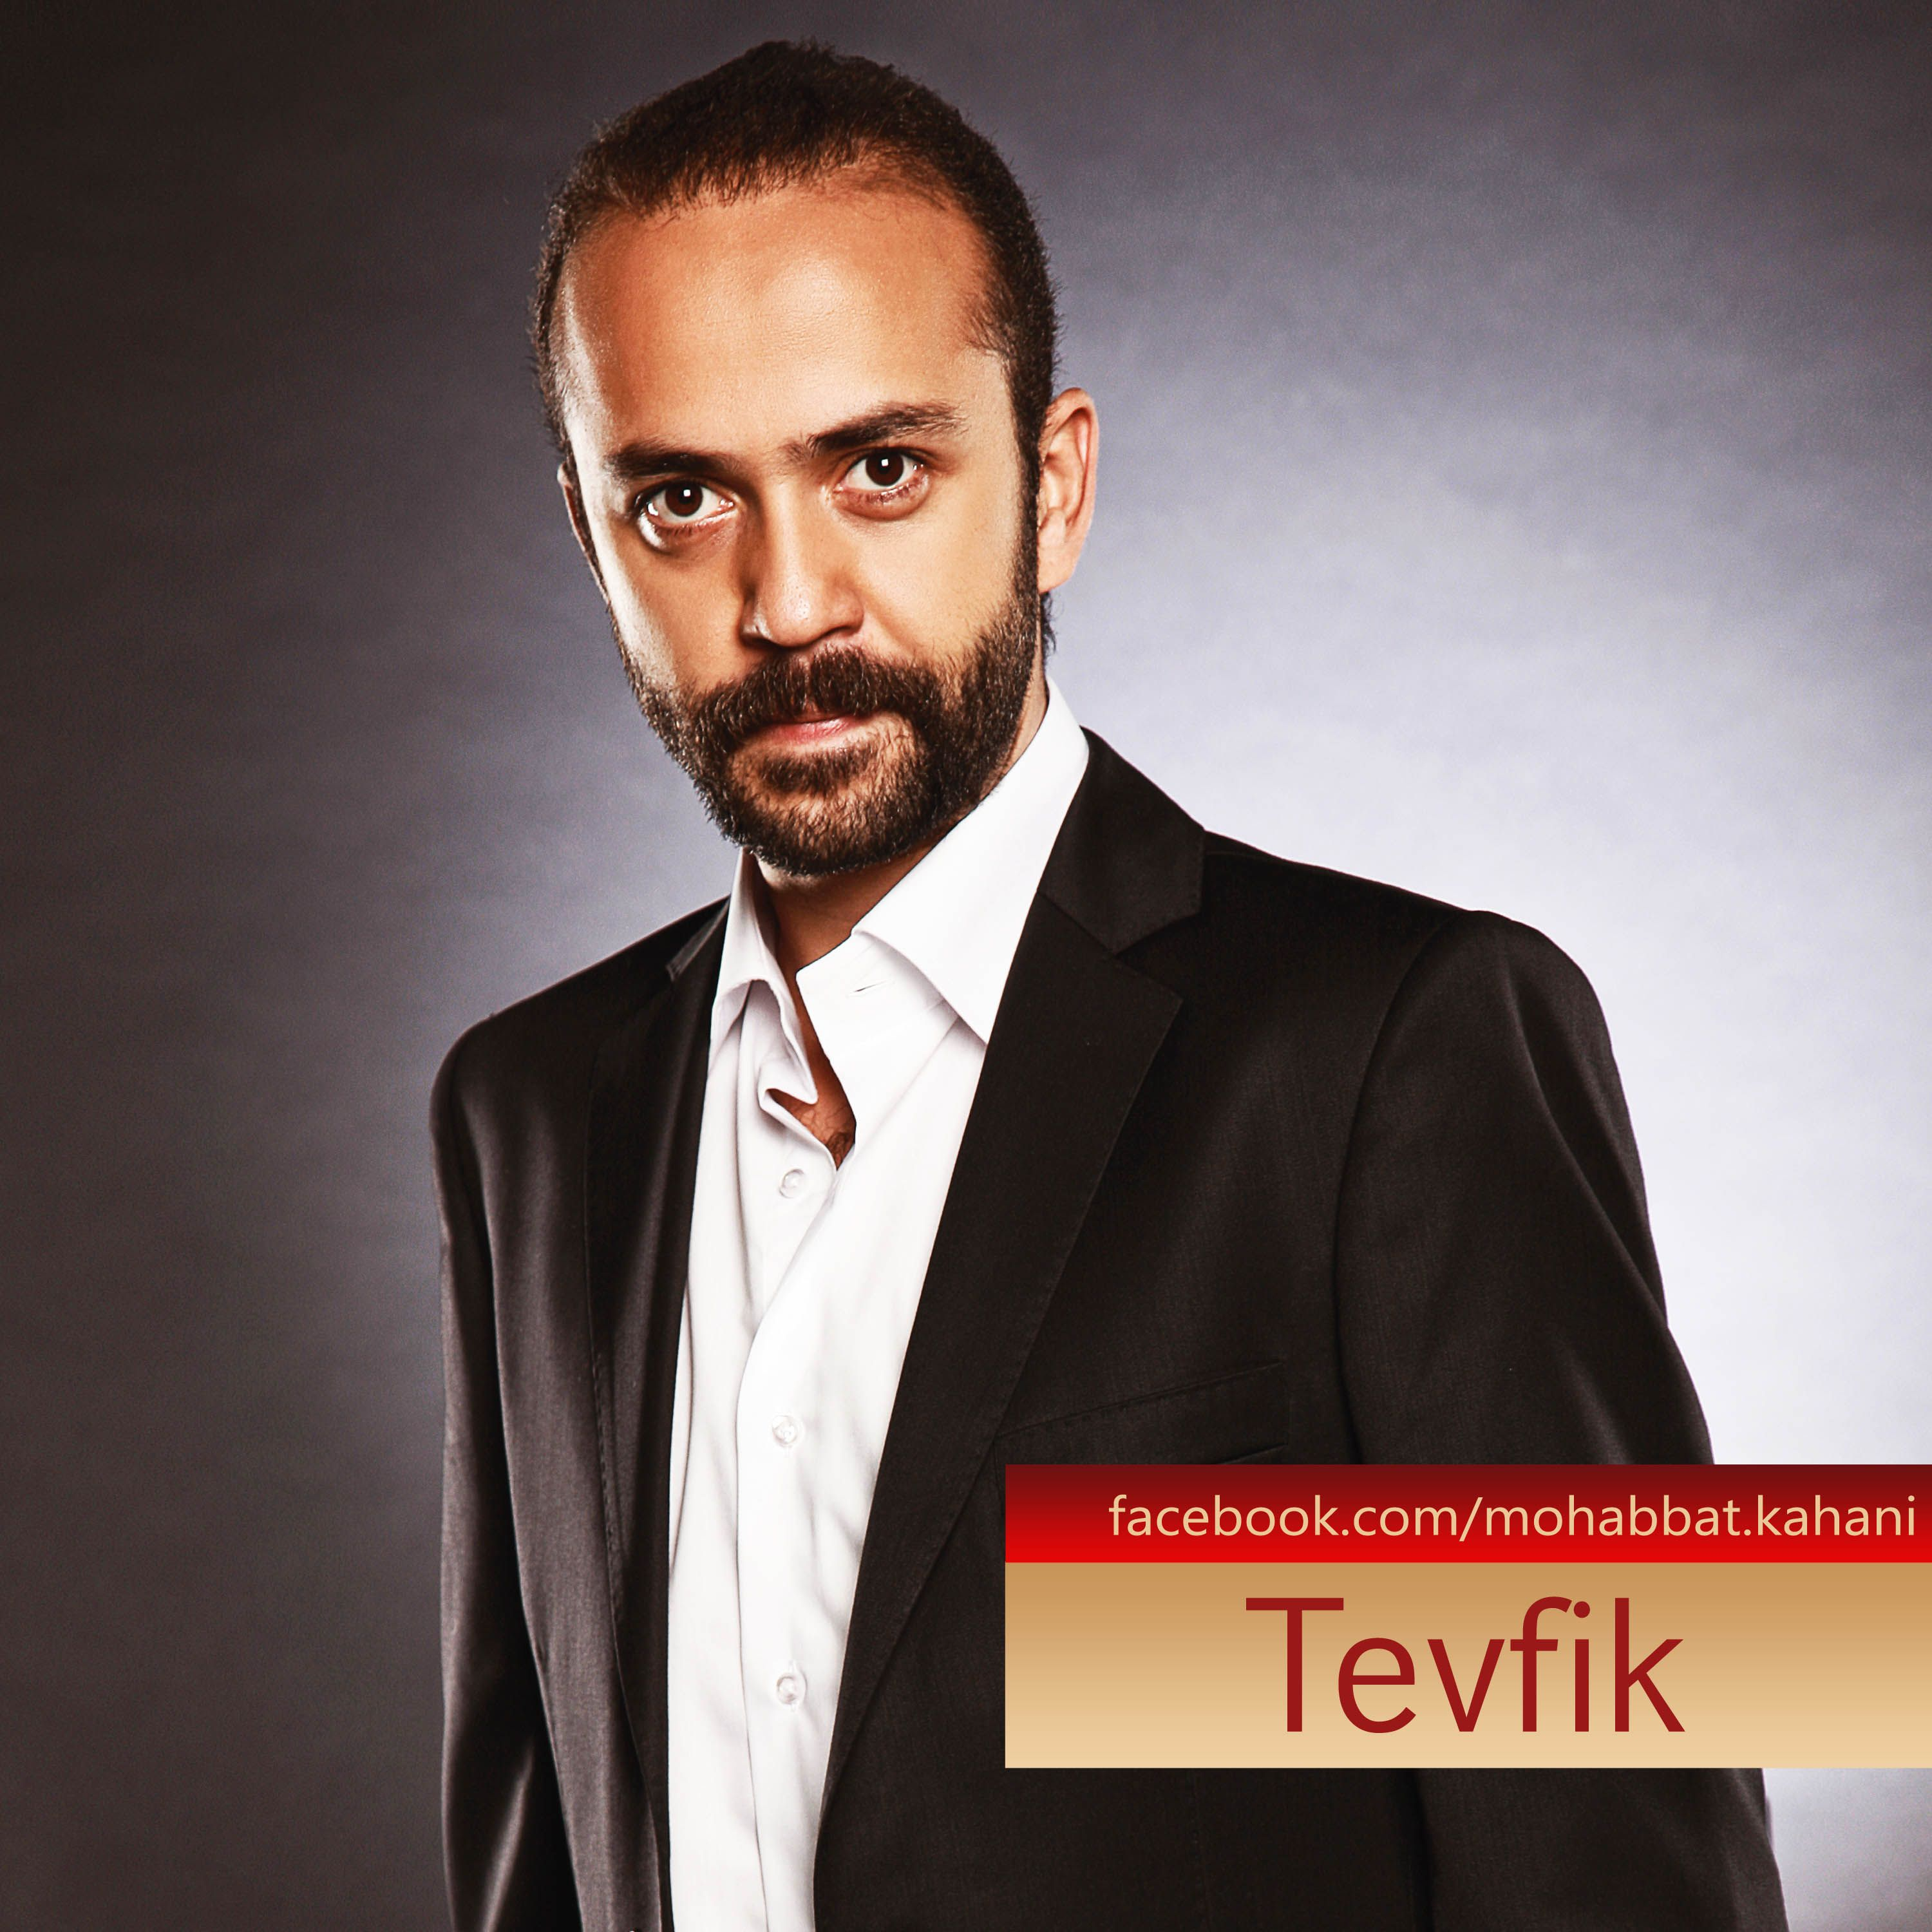 Tevfik - Often called Tefo, Ramiz's and Ezel's man, Ali's bestfriend